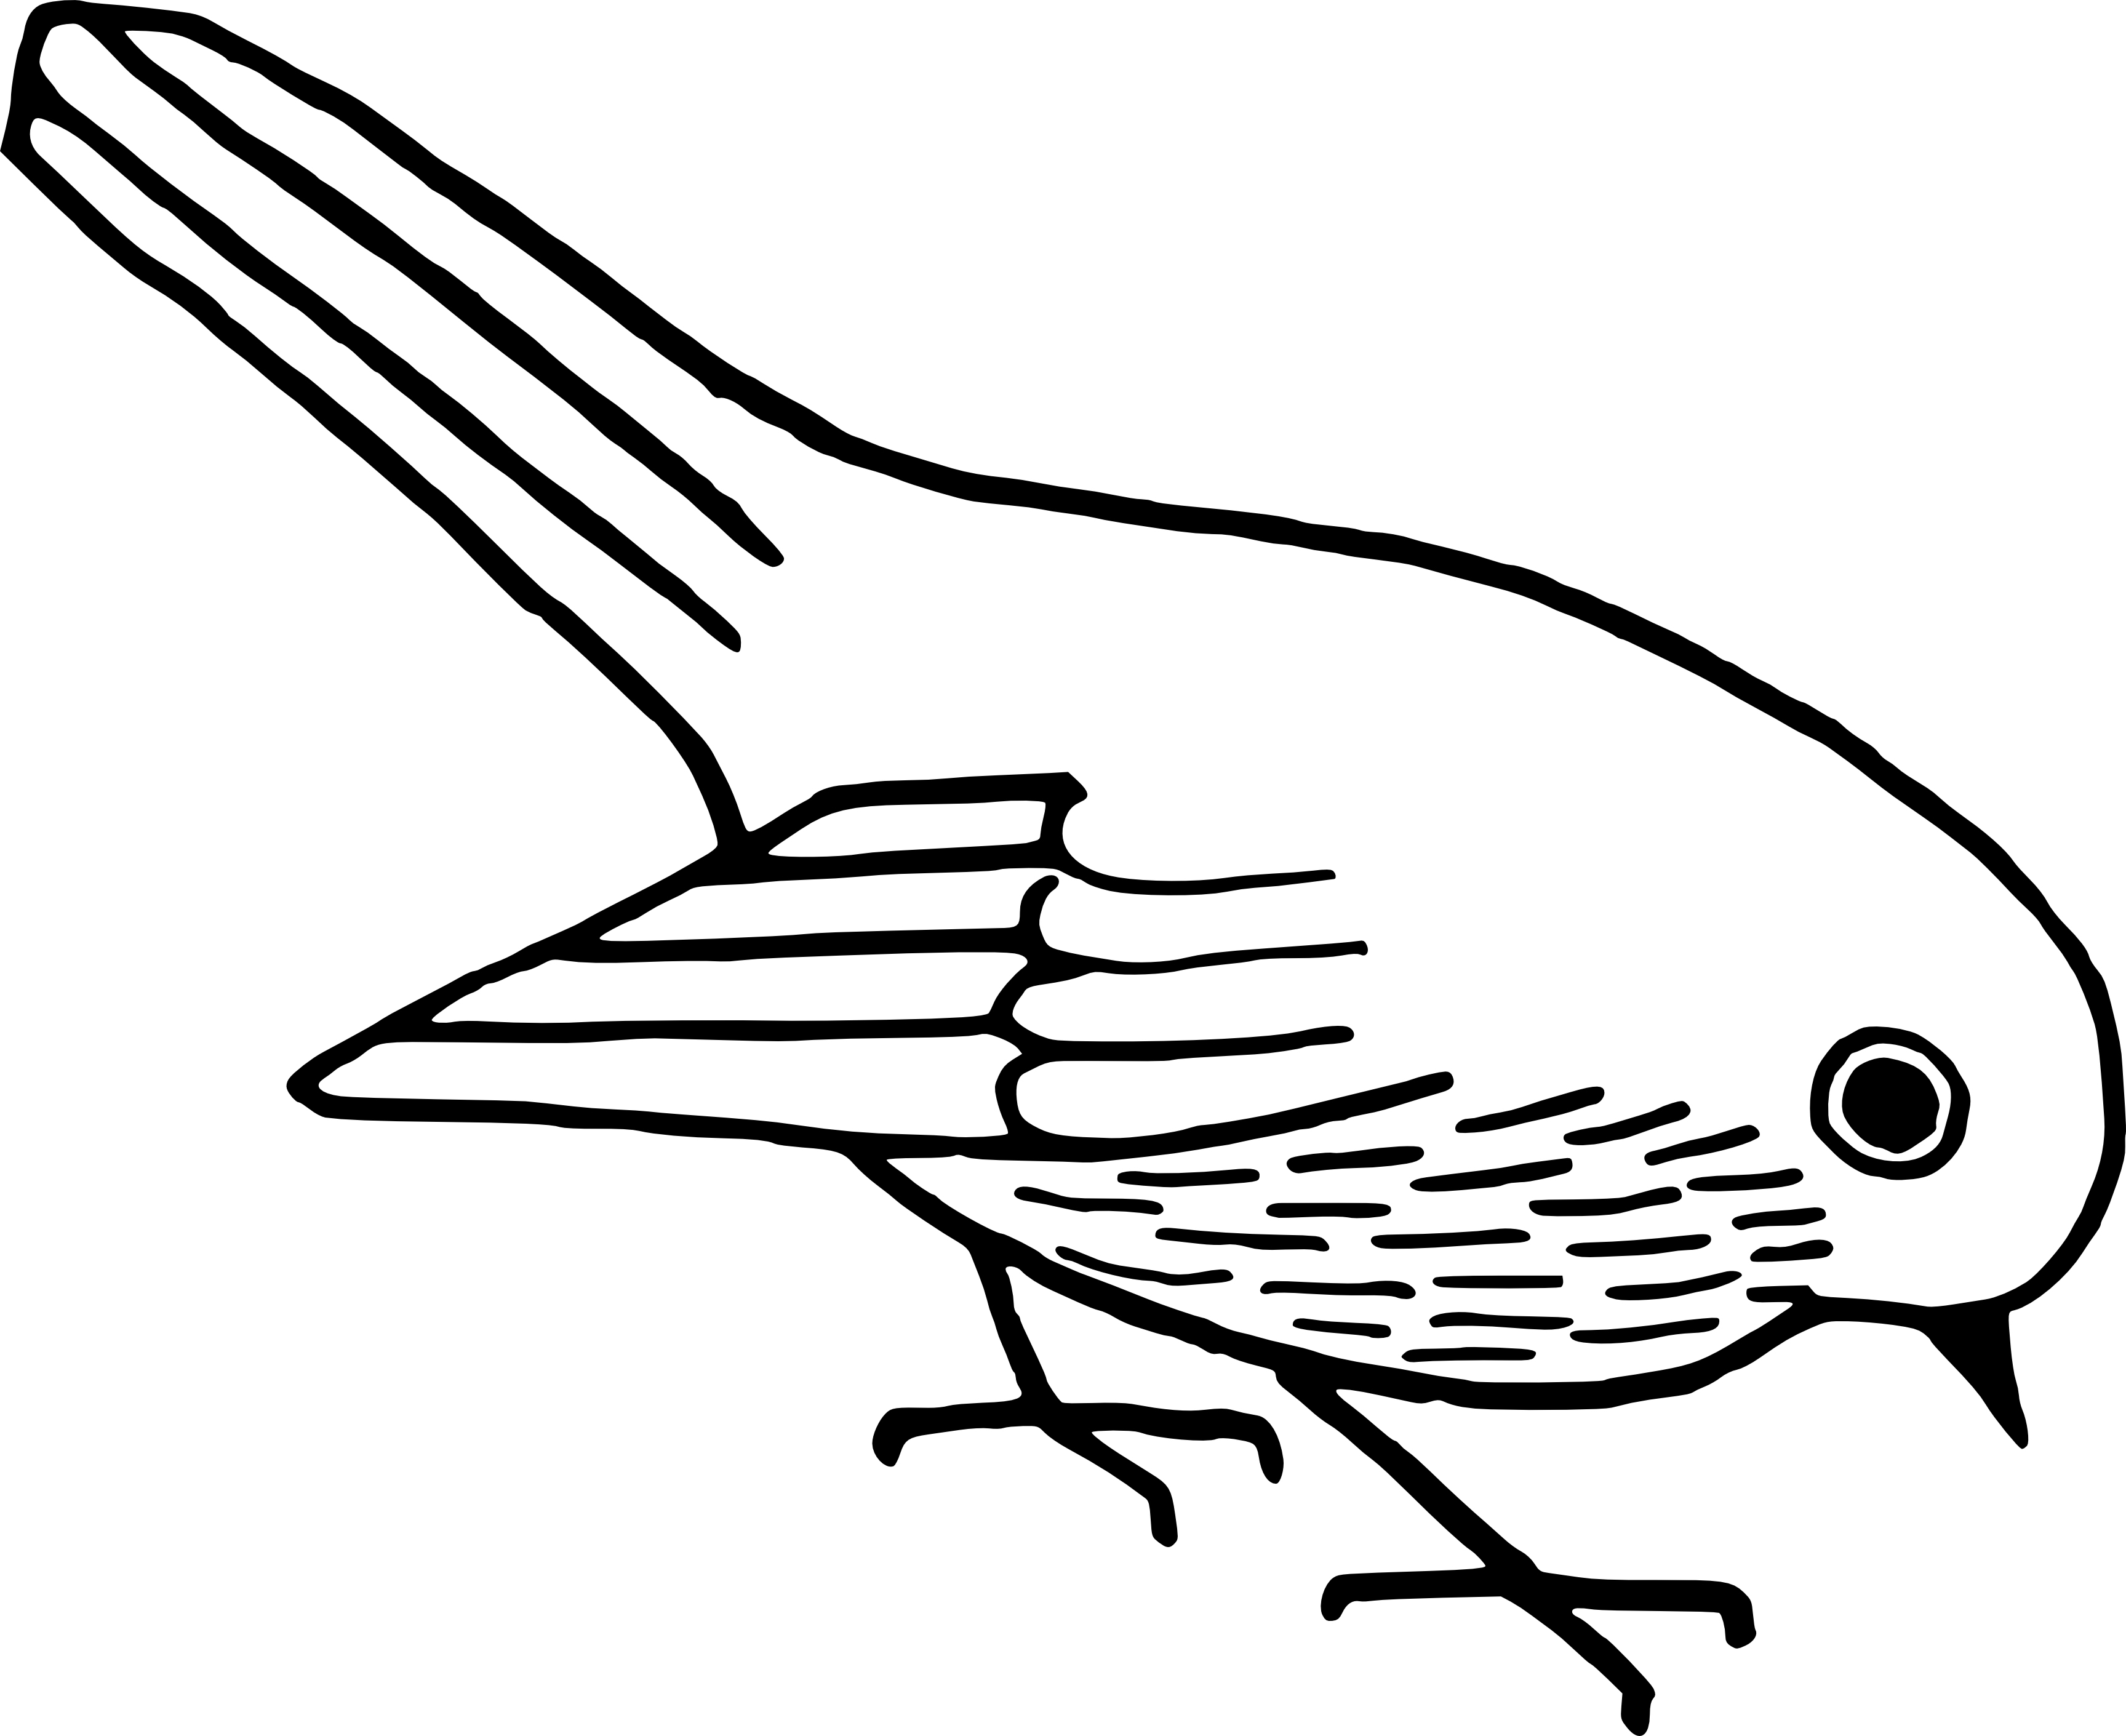 Free clipart generic bird images black and white. Collection of department download